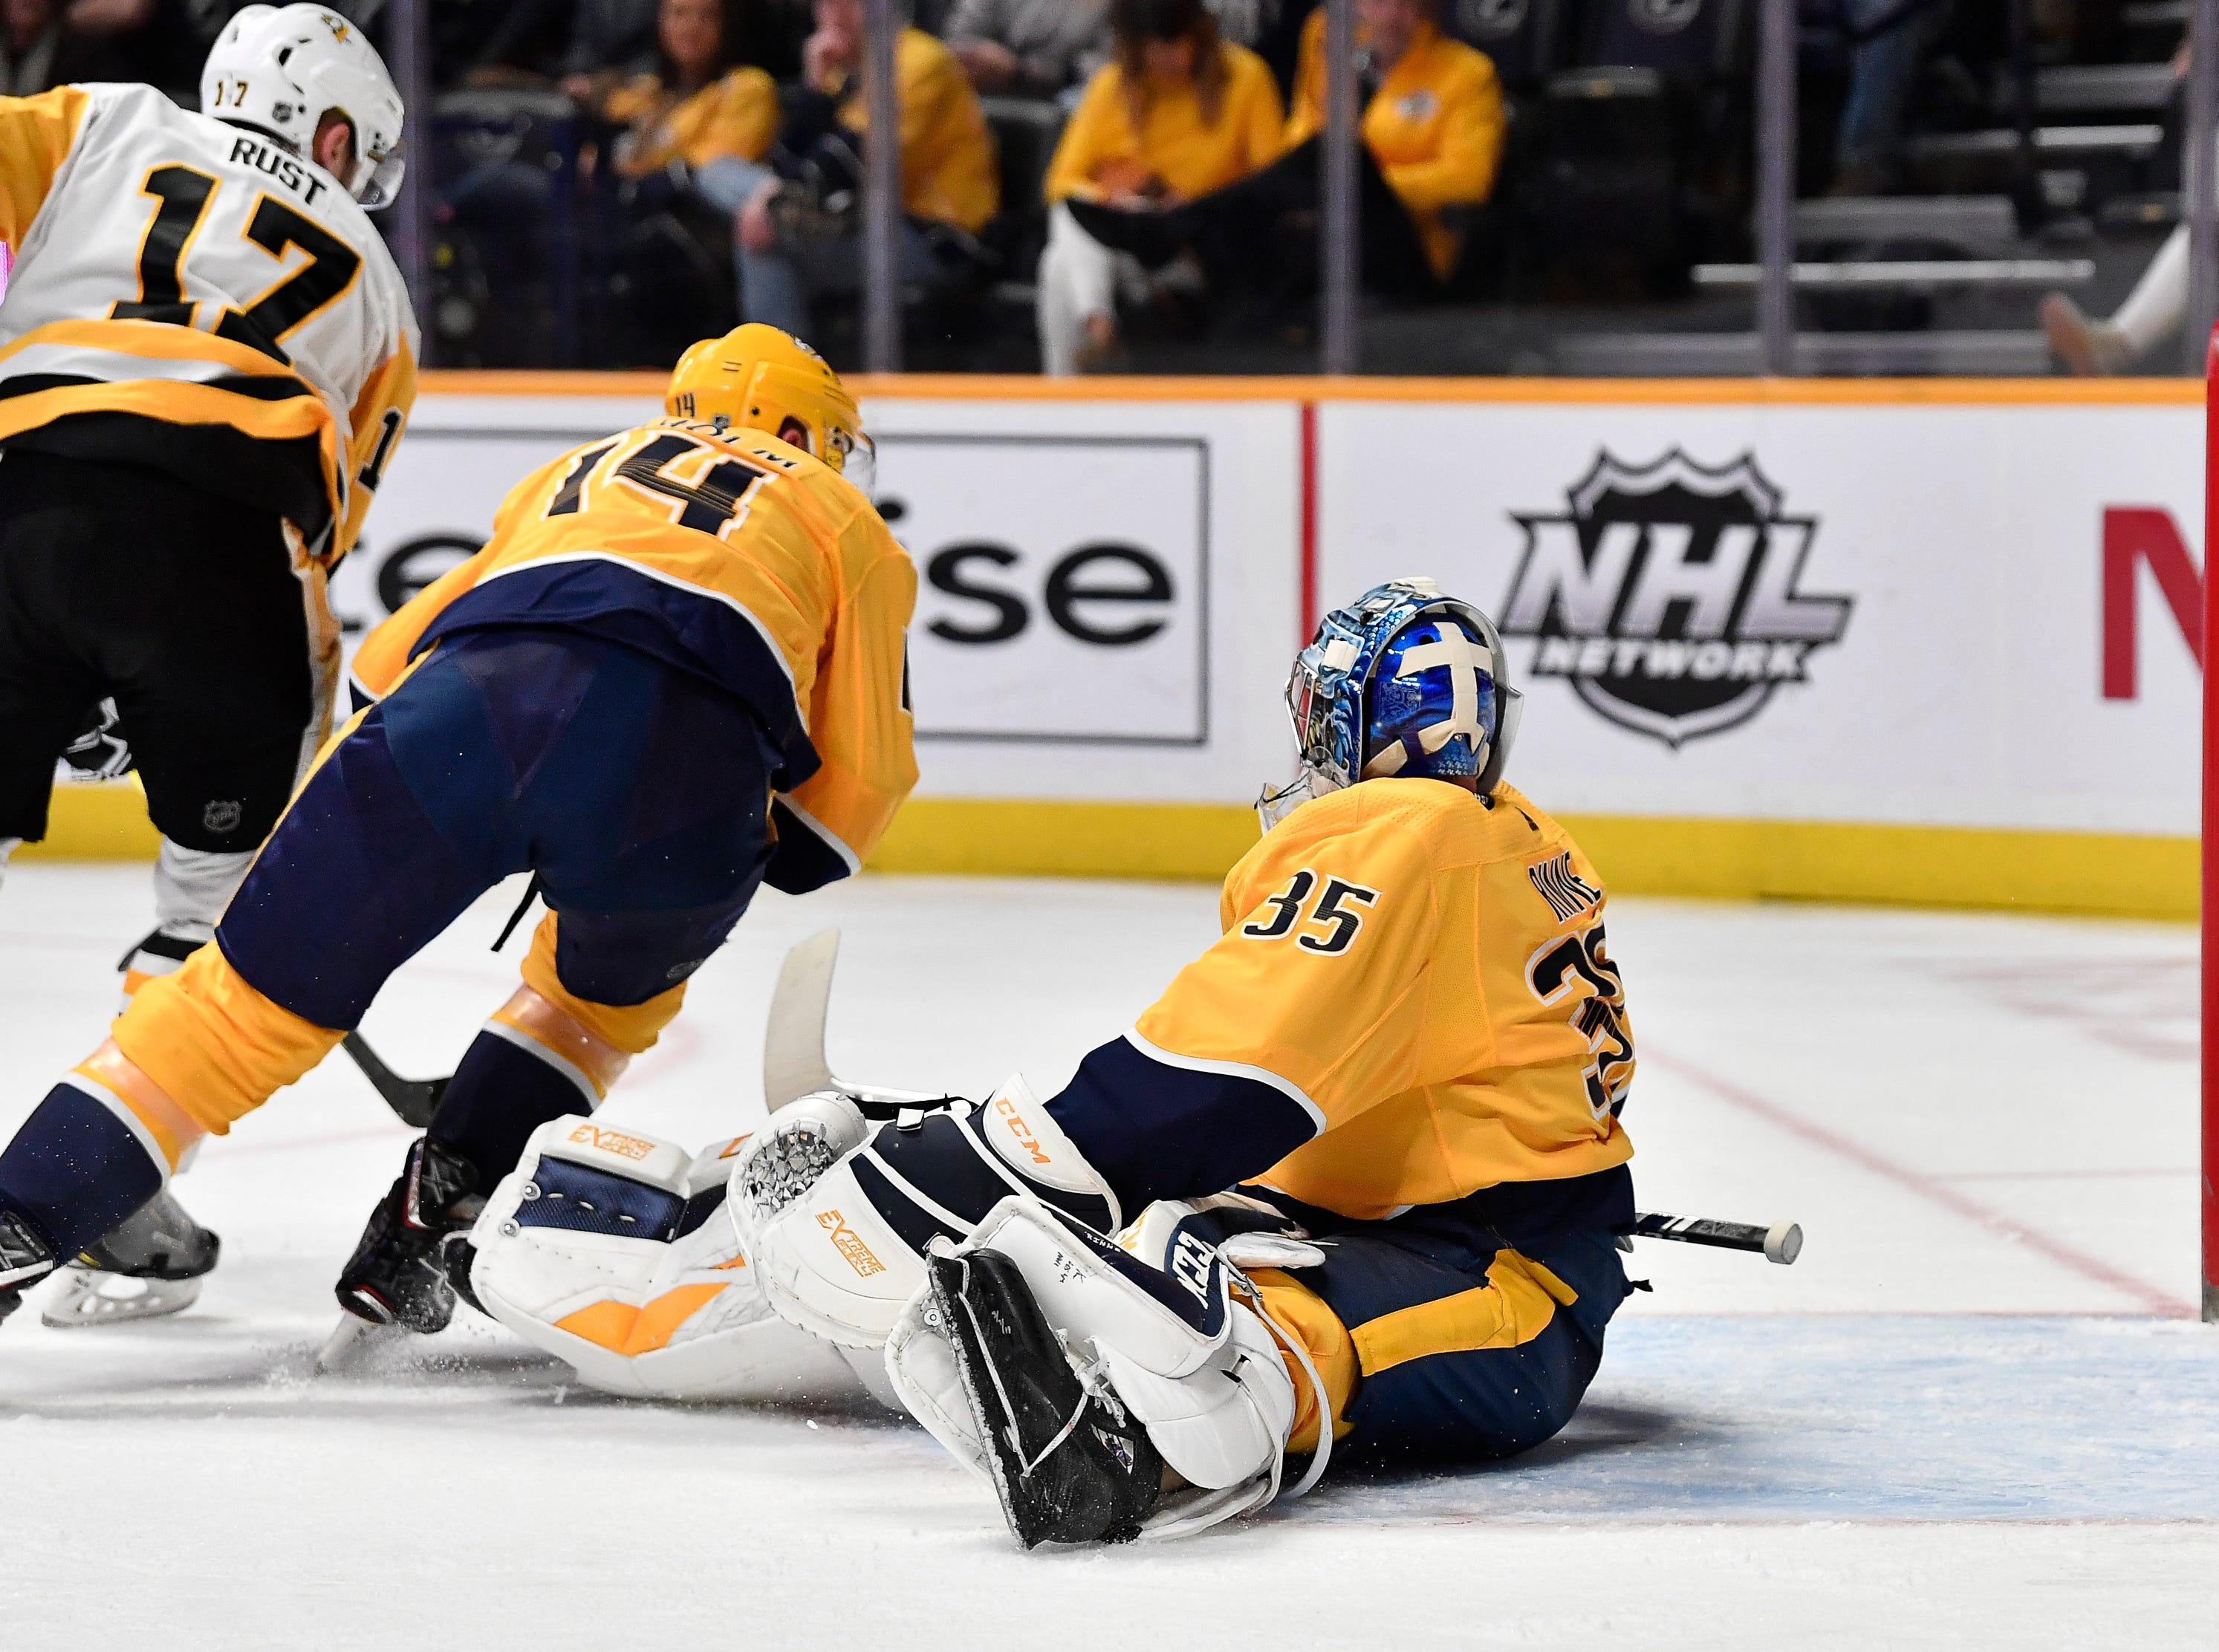 Penguins right wing Bryan Rust (17) scores a goal past Predators defenseman Mattias Ekholm (14) and goaltender Pekka Rinne (35) during the second period at Bridgestone Arena Thursday, March 21, 2019 in Nashville, Tenn.